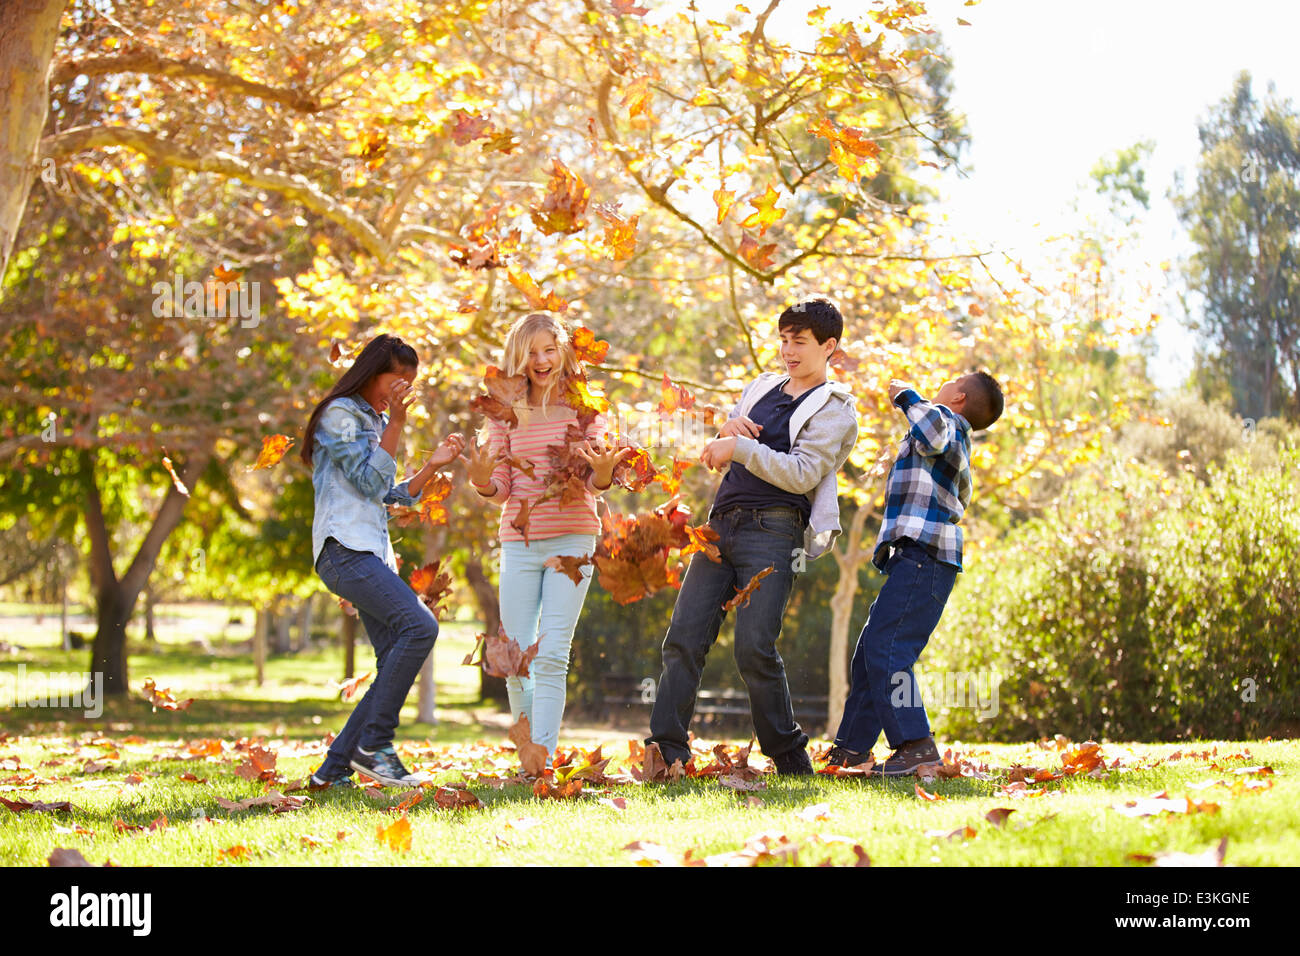 Four Children Throwing Autumn Leaves In The Air - Stock Image